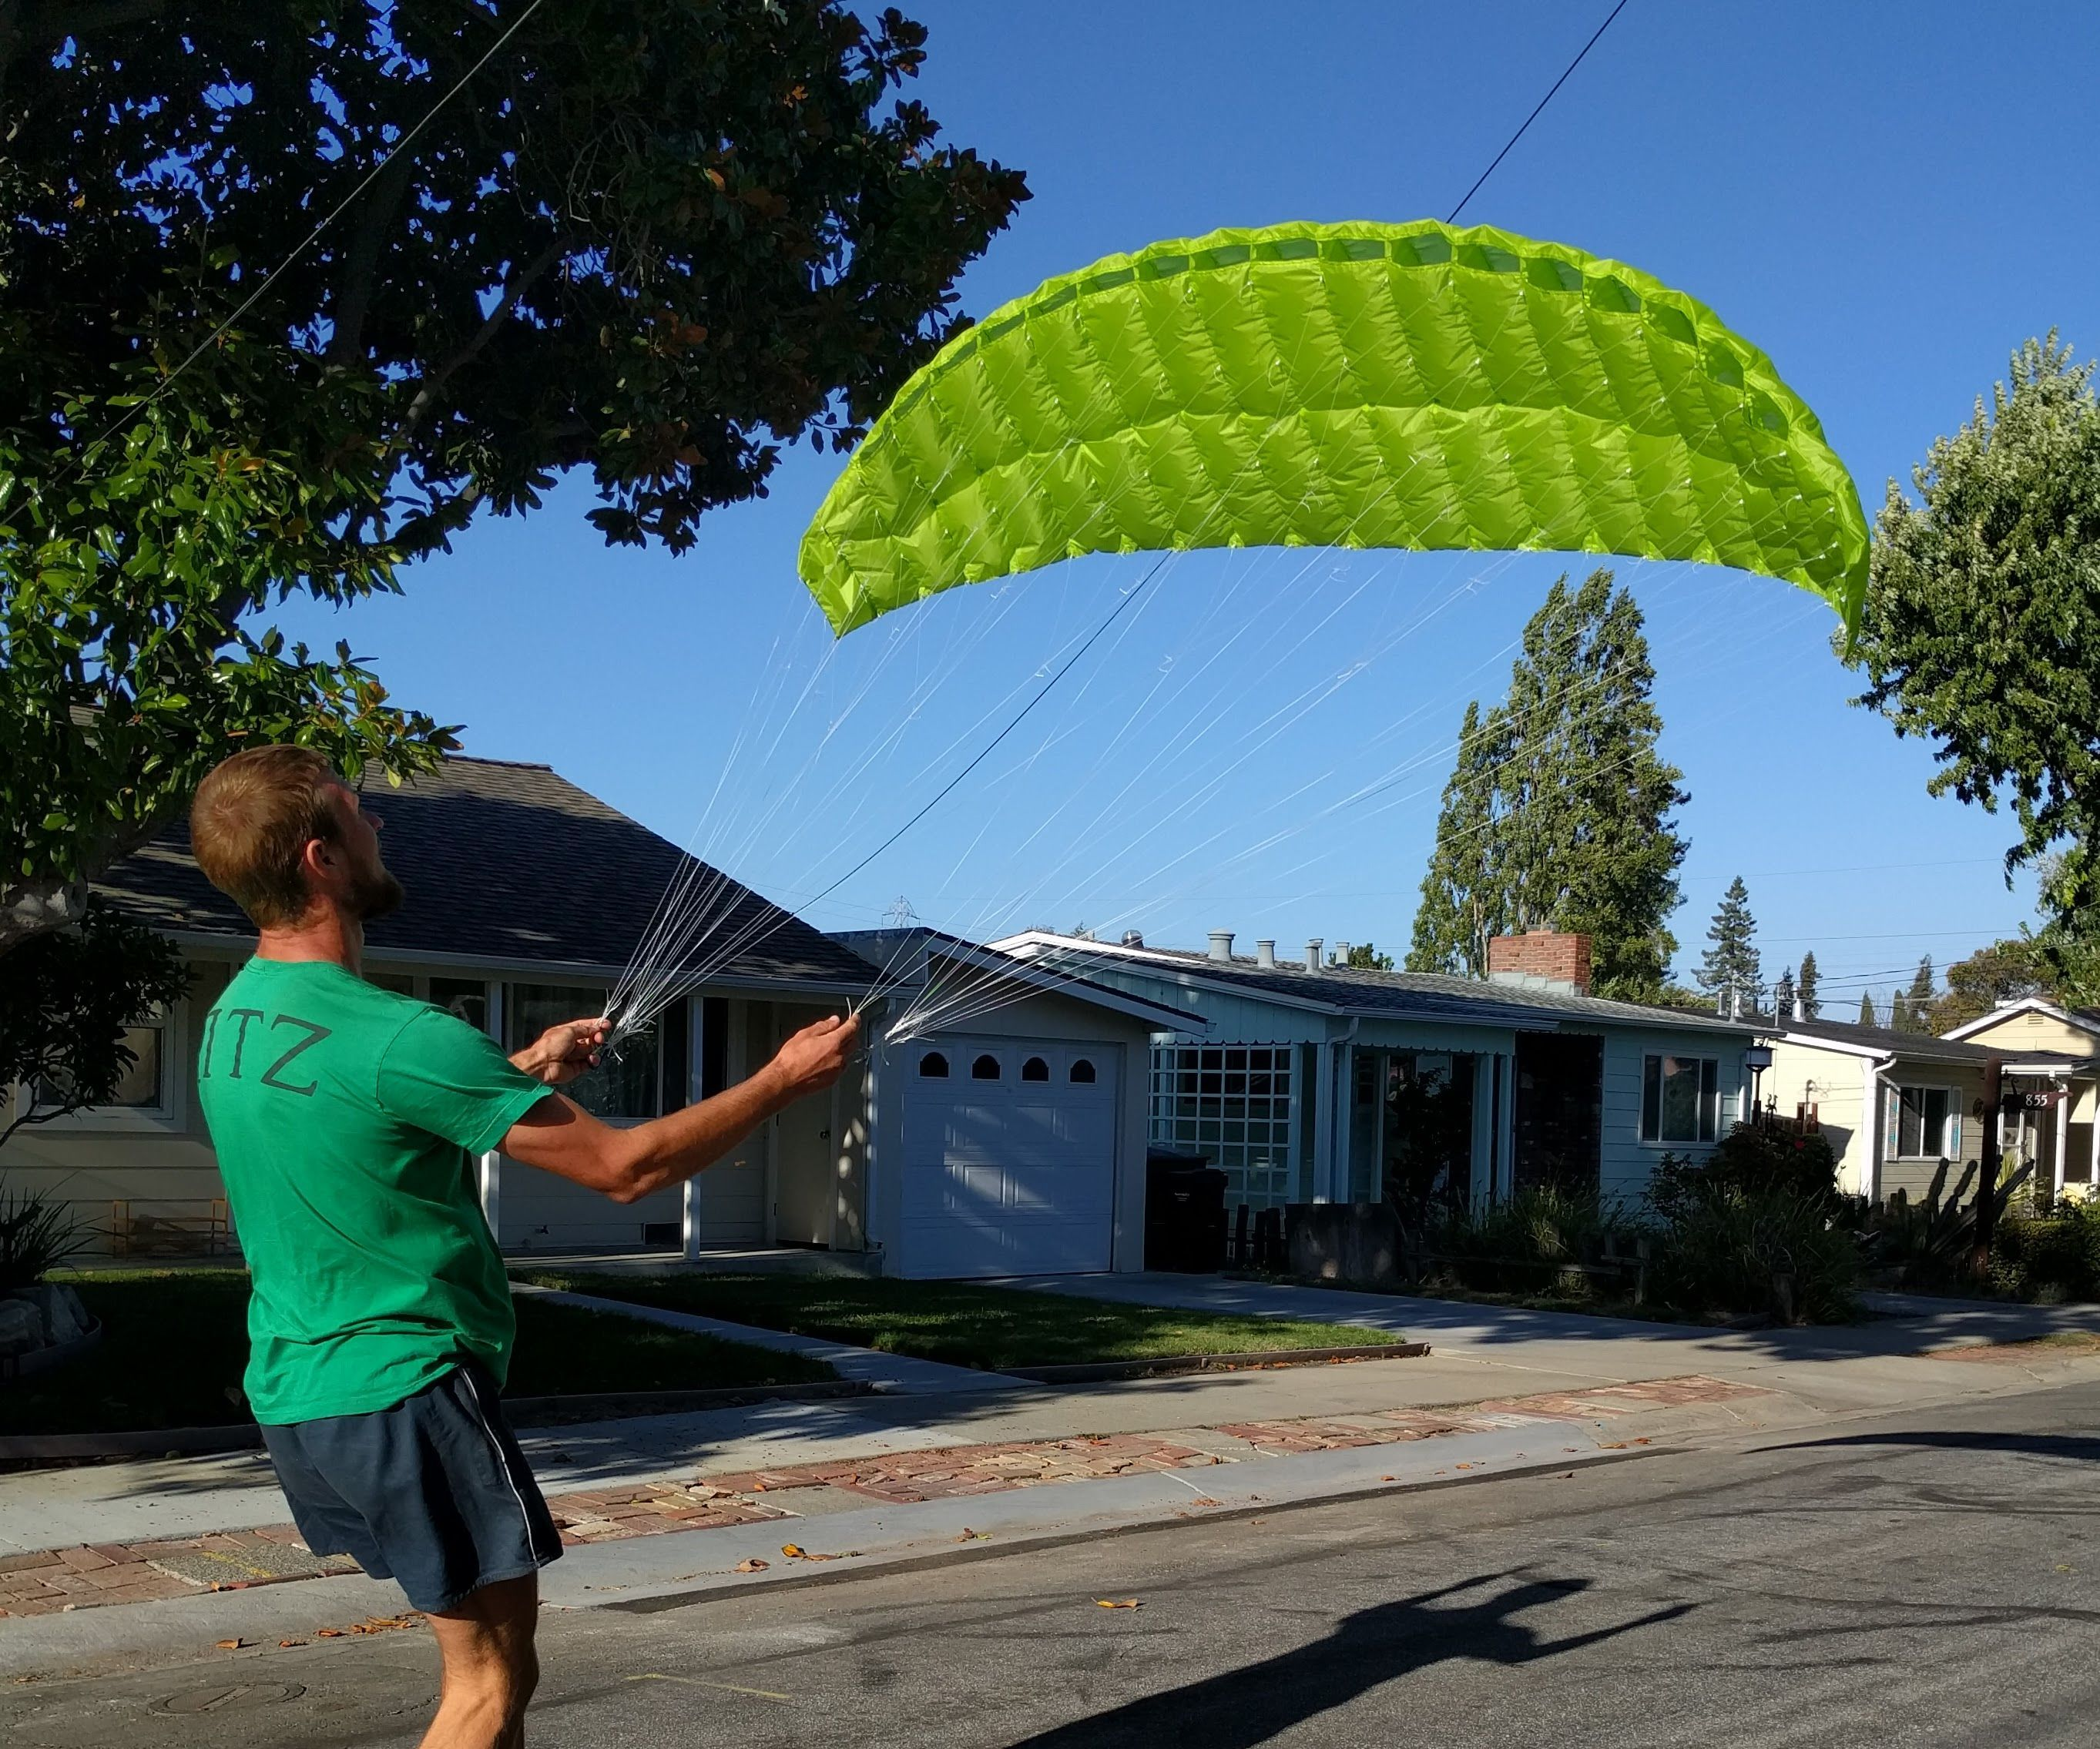 Sewing a Mini Paraglider